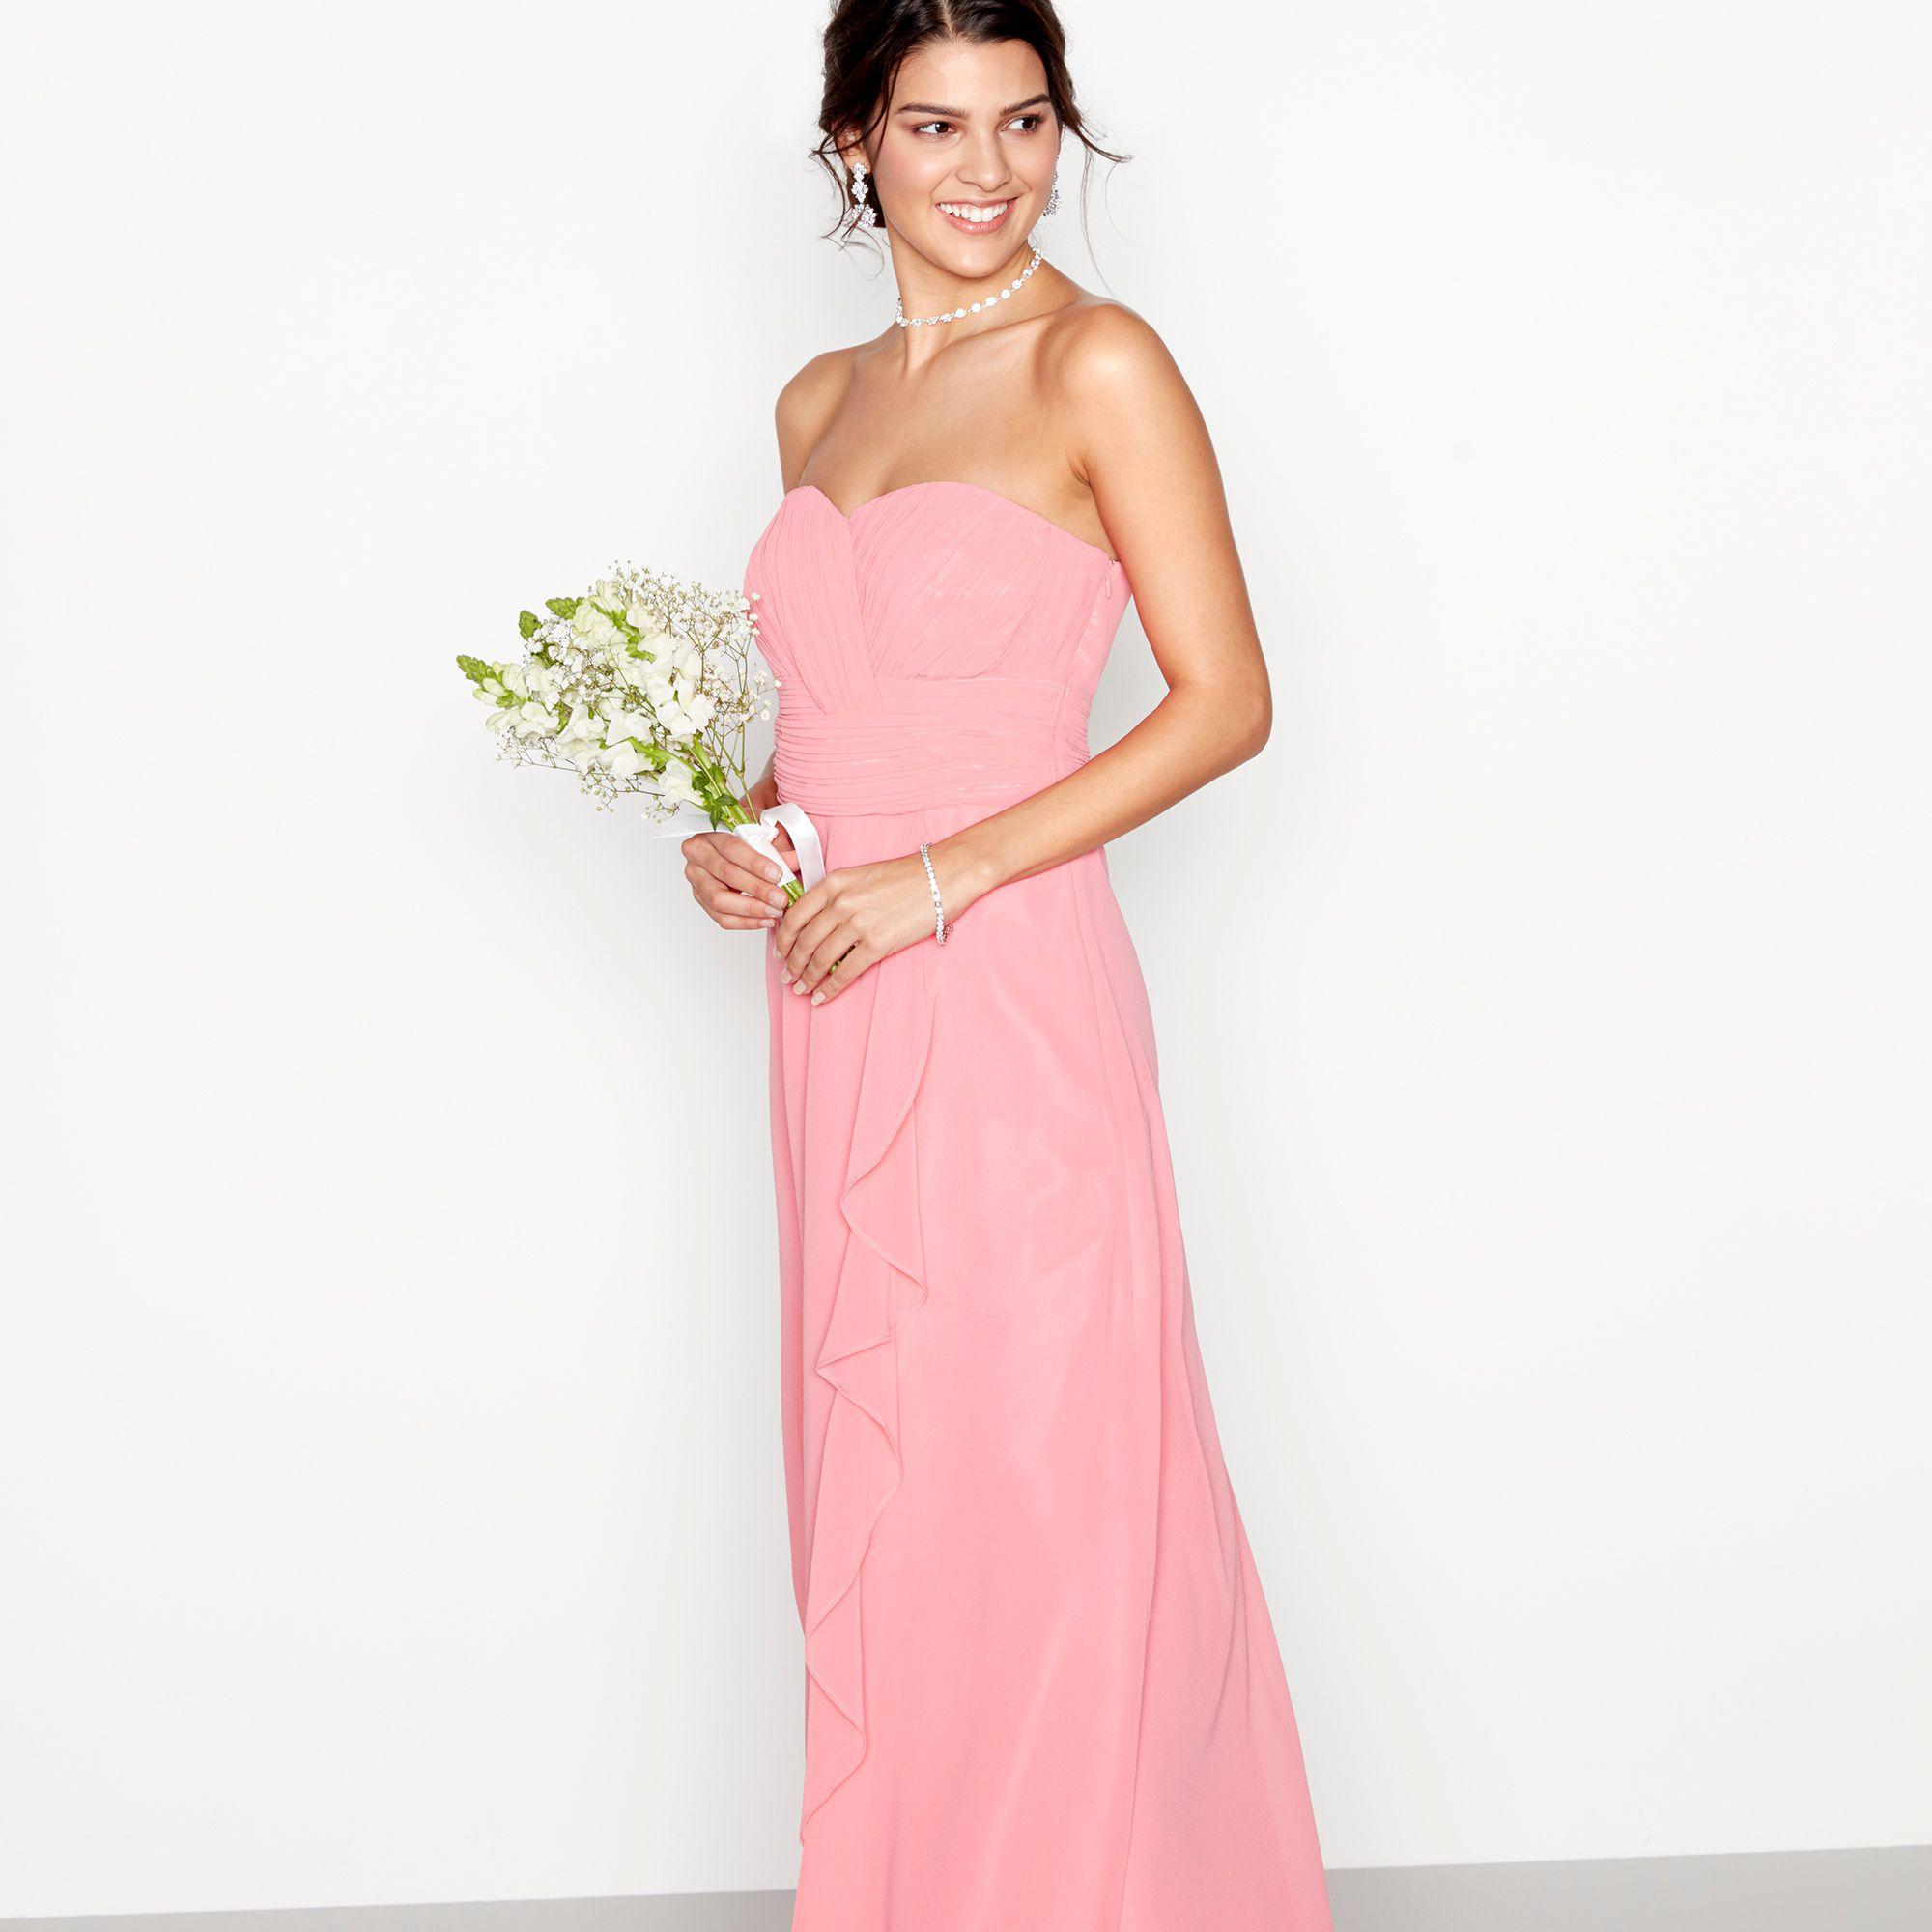 2526a4061403 Début Coral Chiffon 'sara' Strapless Plus Size Bridesmaid Dress in ...